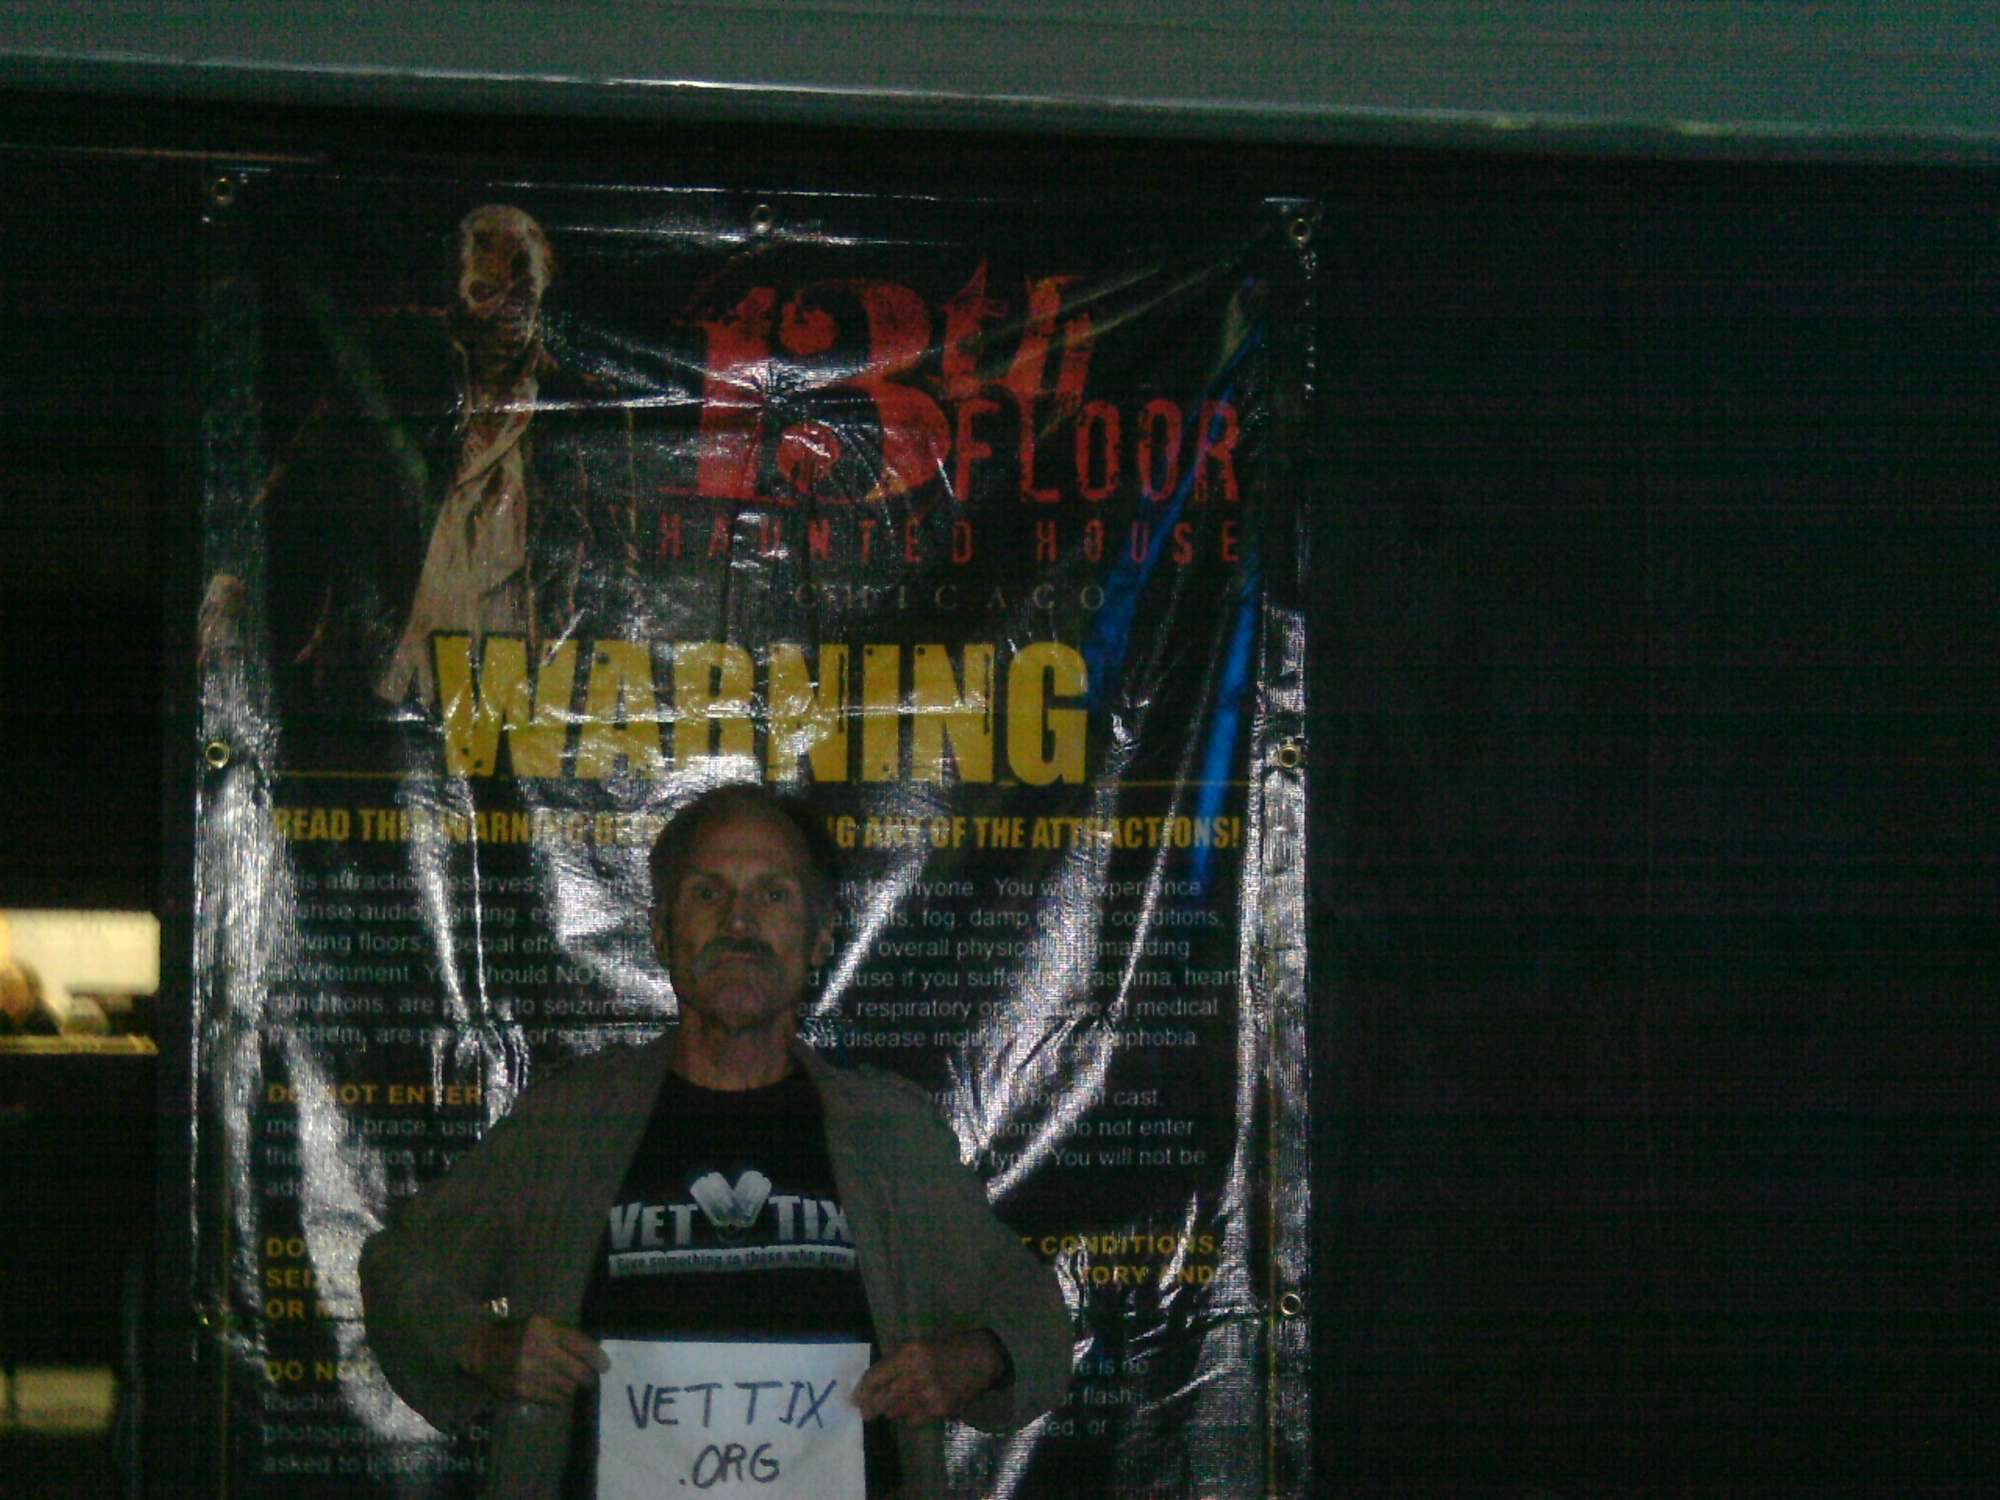 Captivating Larry Attended 13th Floor Fast Pass   Largest Haunted House In Chicago    Tickets Only Good